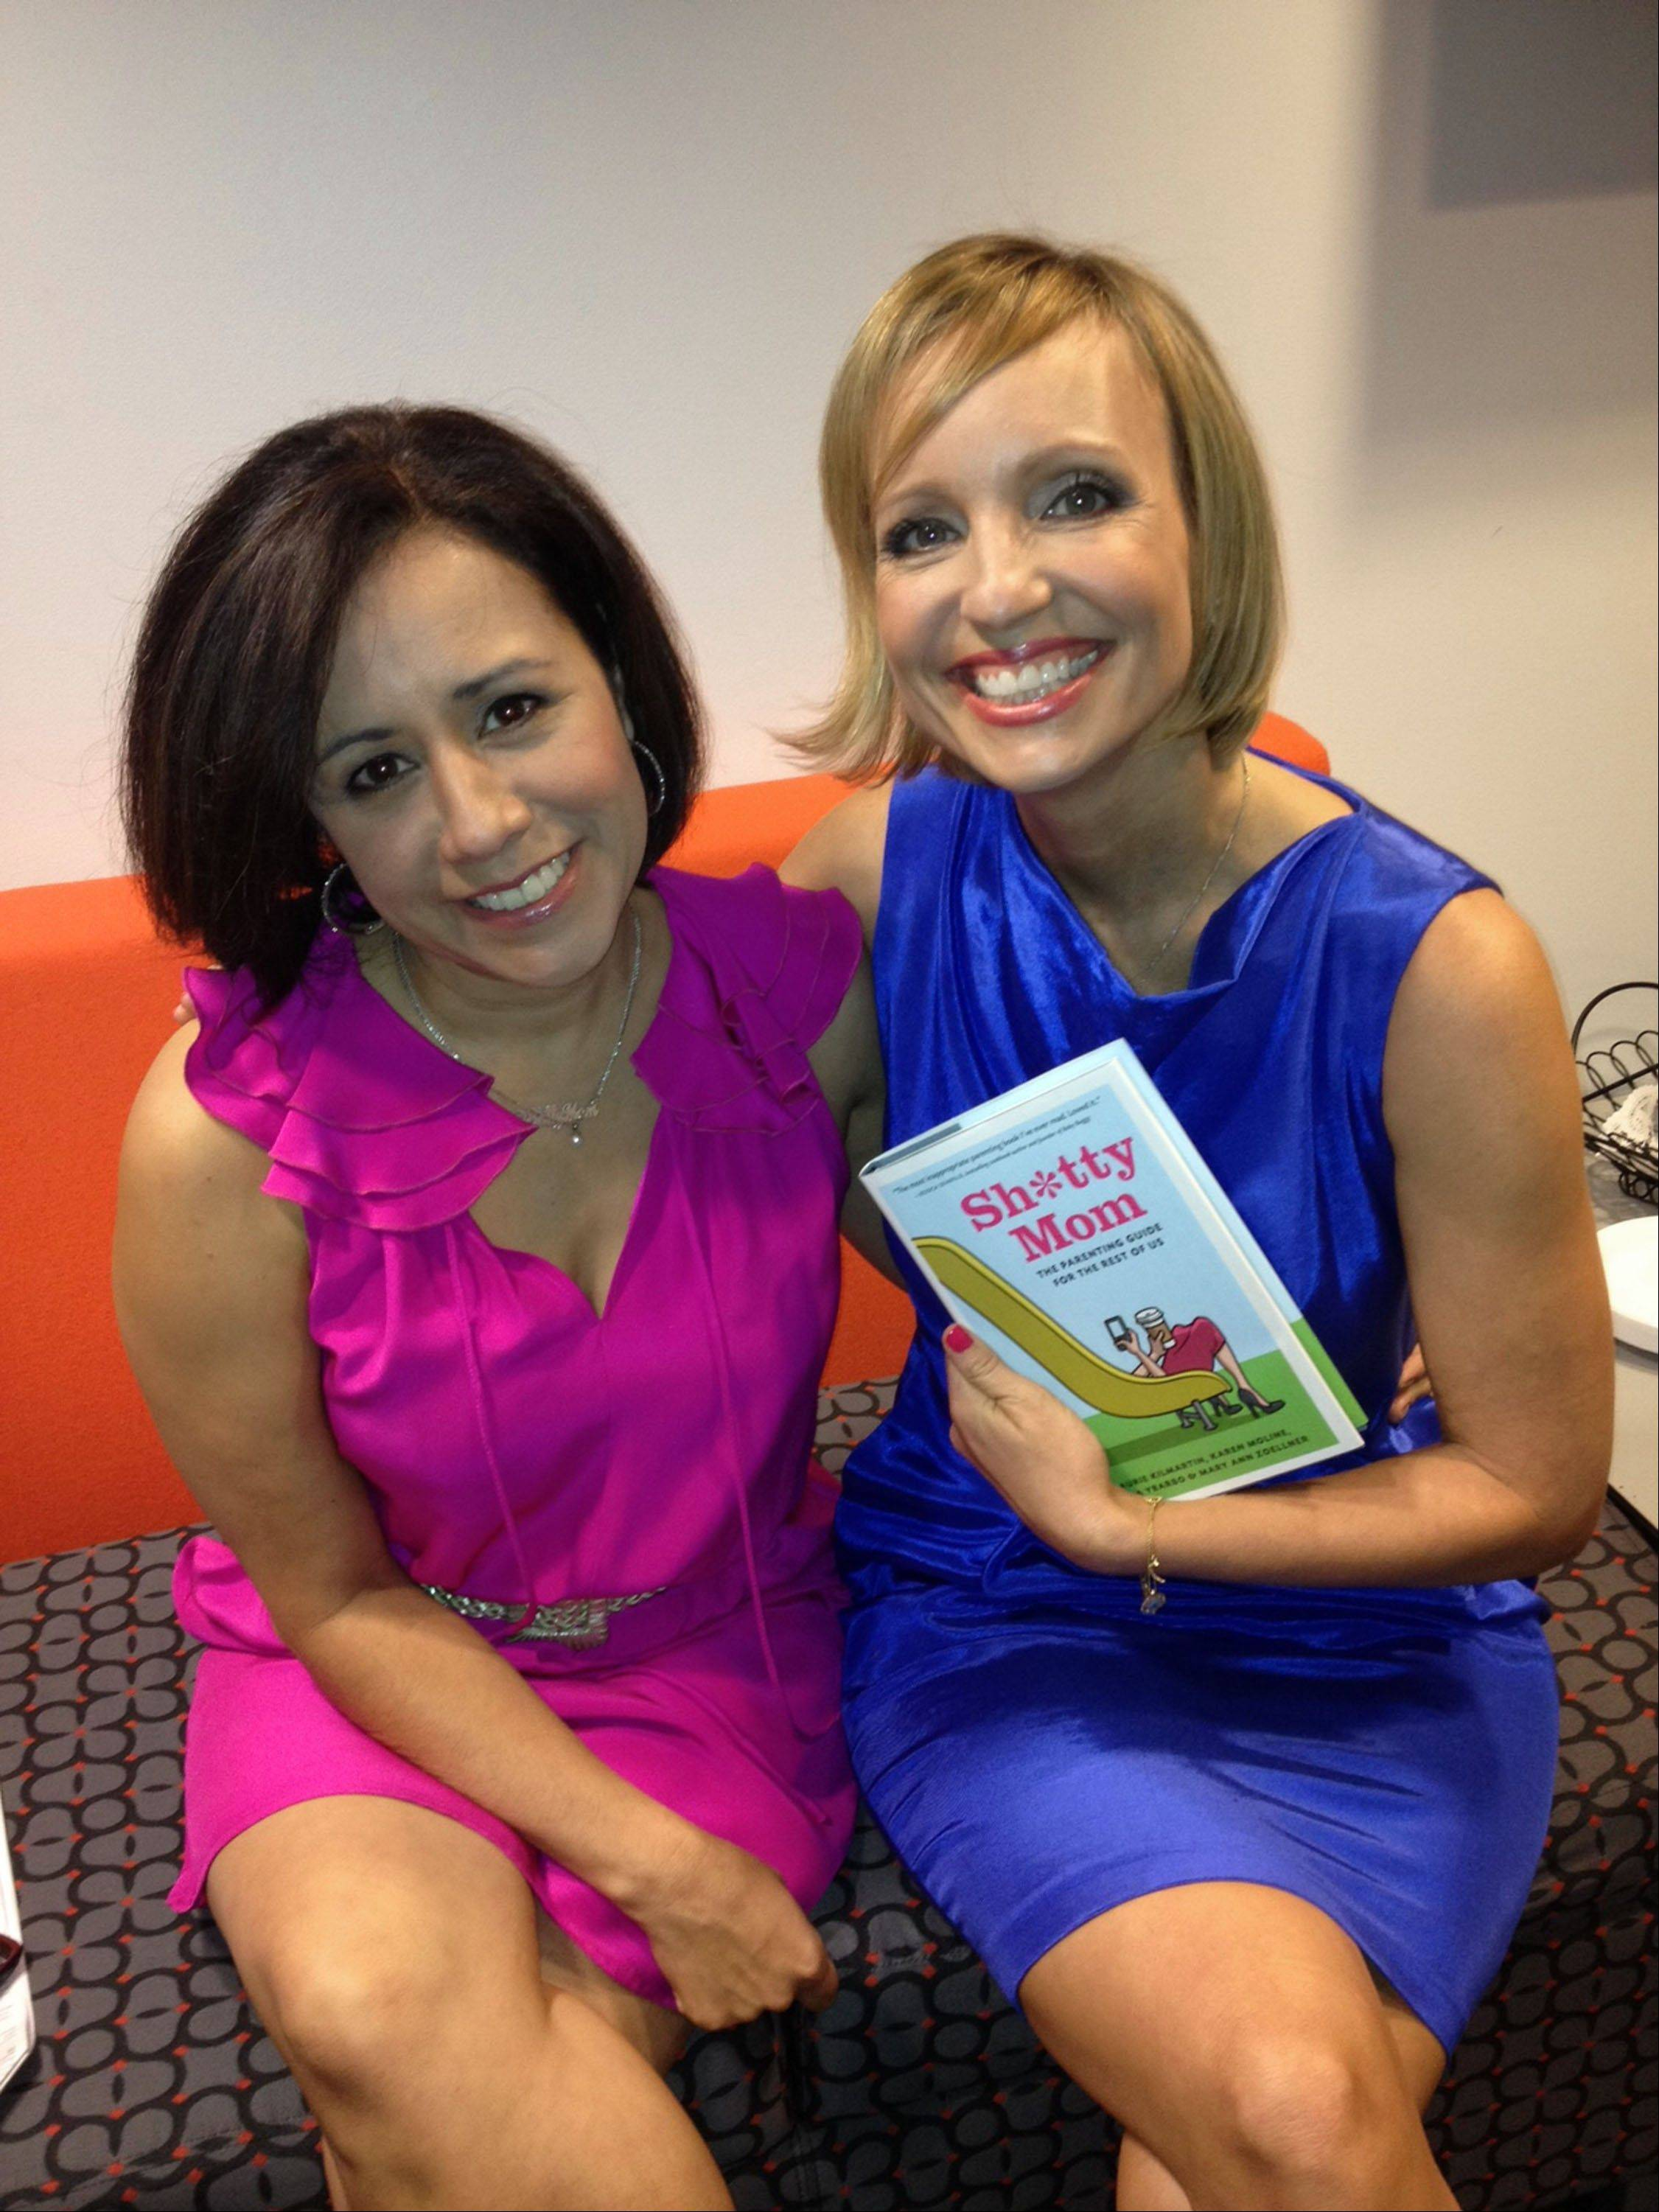 This Sept. 11, 2012 image released by Yfat Reiss Gendell shows Alicia Ybarbo, left, and Mary Ann Zoellner, two of four authors of �Sh*tty Mom,� posing with their book in New York. The latest in irreverent parenting books is part parody and part painful truth. It�s written by four very busy, often tired working moms looking to offer some overdue LOLs as counterpoint to today�s parenting-to-perfection mania.